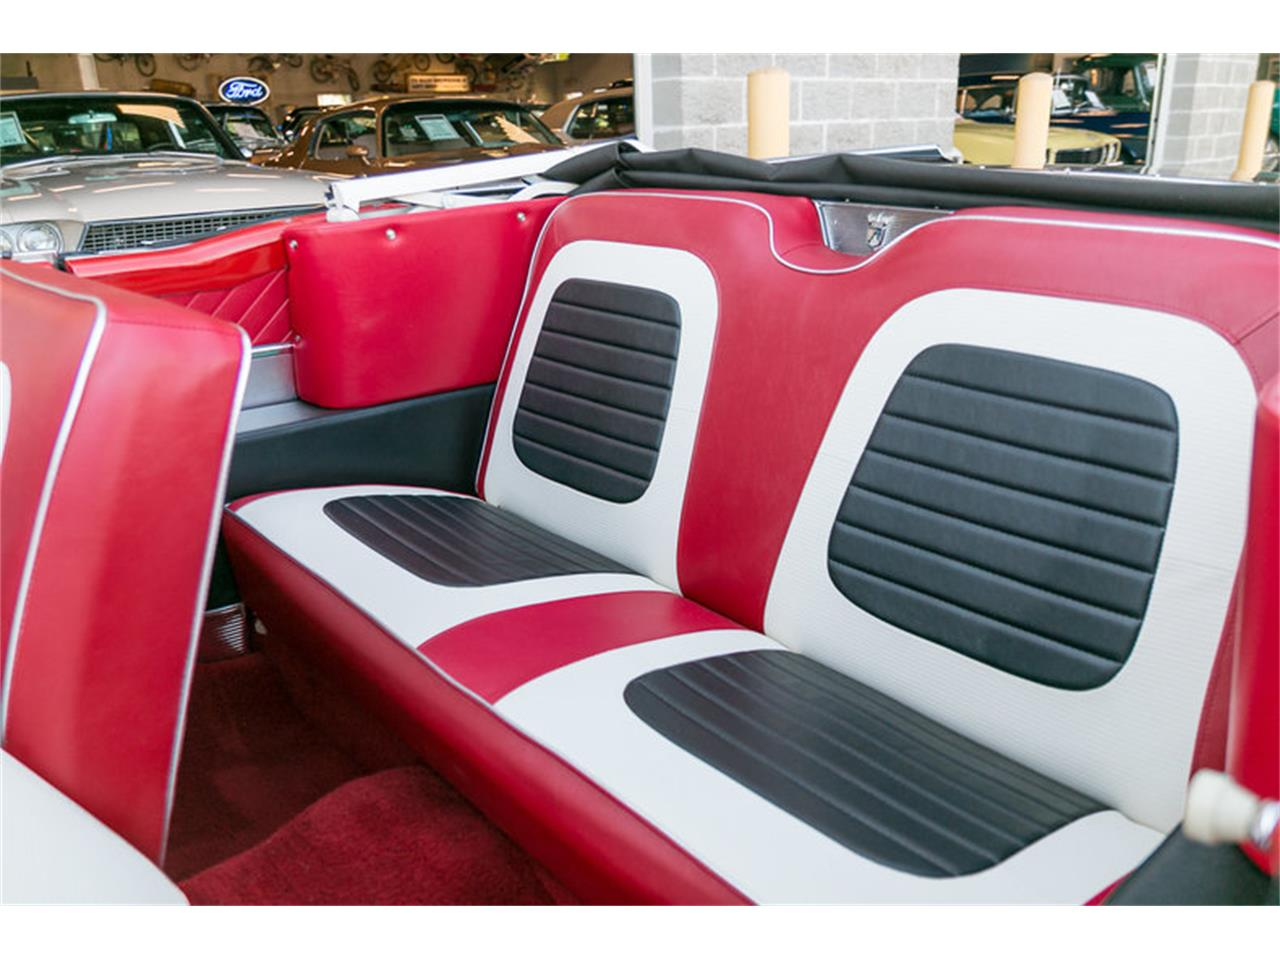 Large Picture of '59 Fairlane located in St. Charles Missouri Offered by Fast Lane Classic Cars Inc. - JVAR